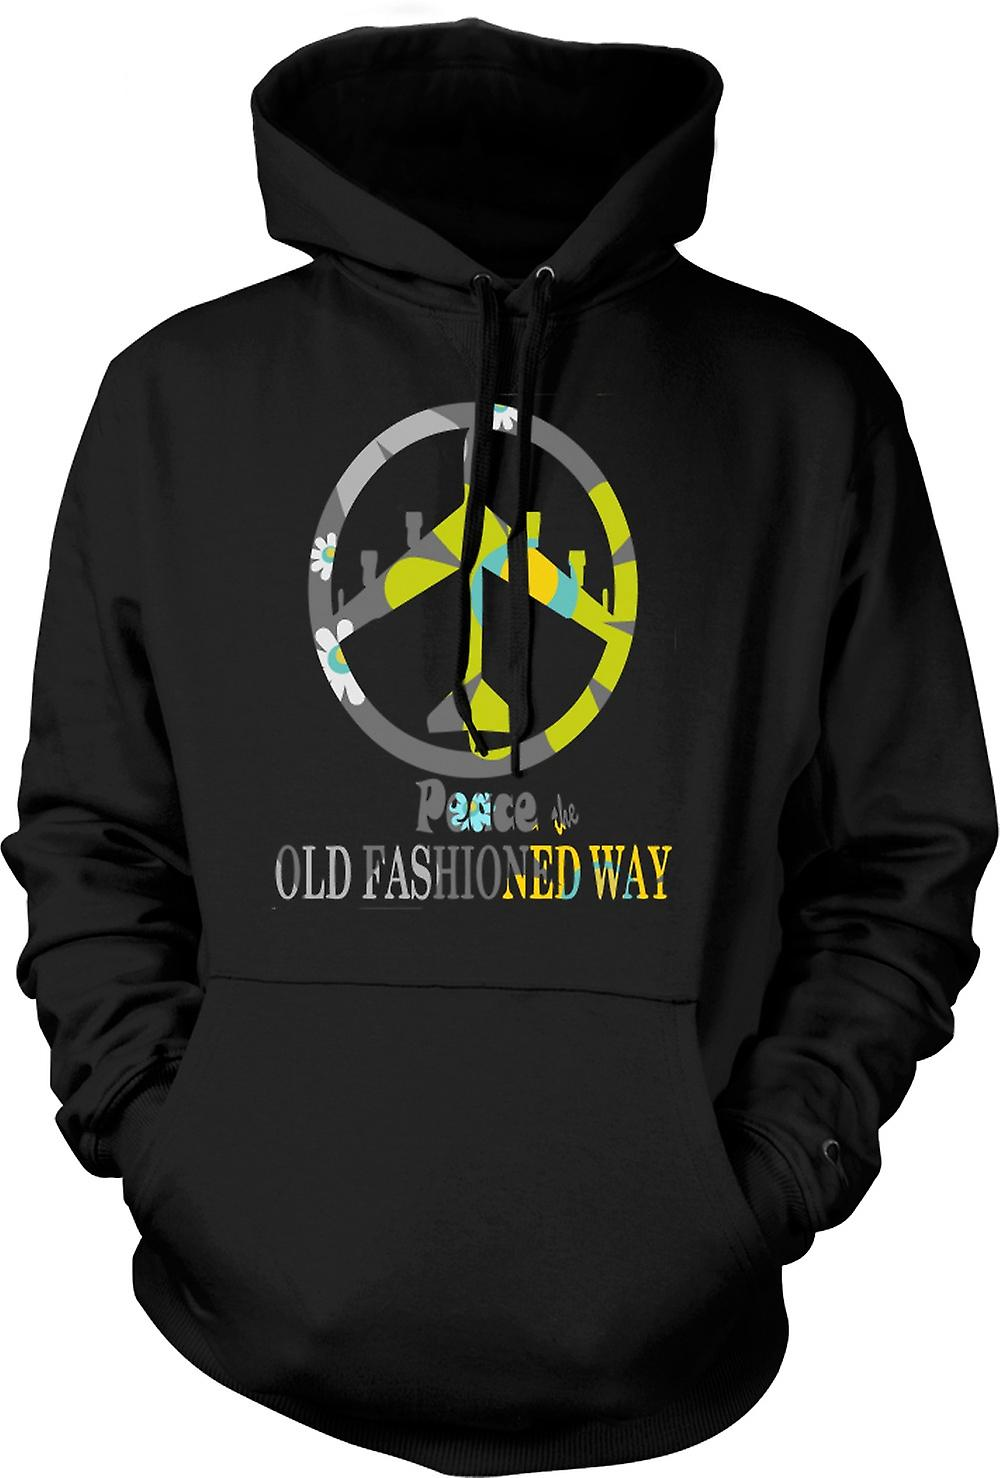 Mens Hoodie - Peace The Old Fashioned Way - B52